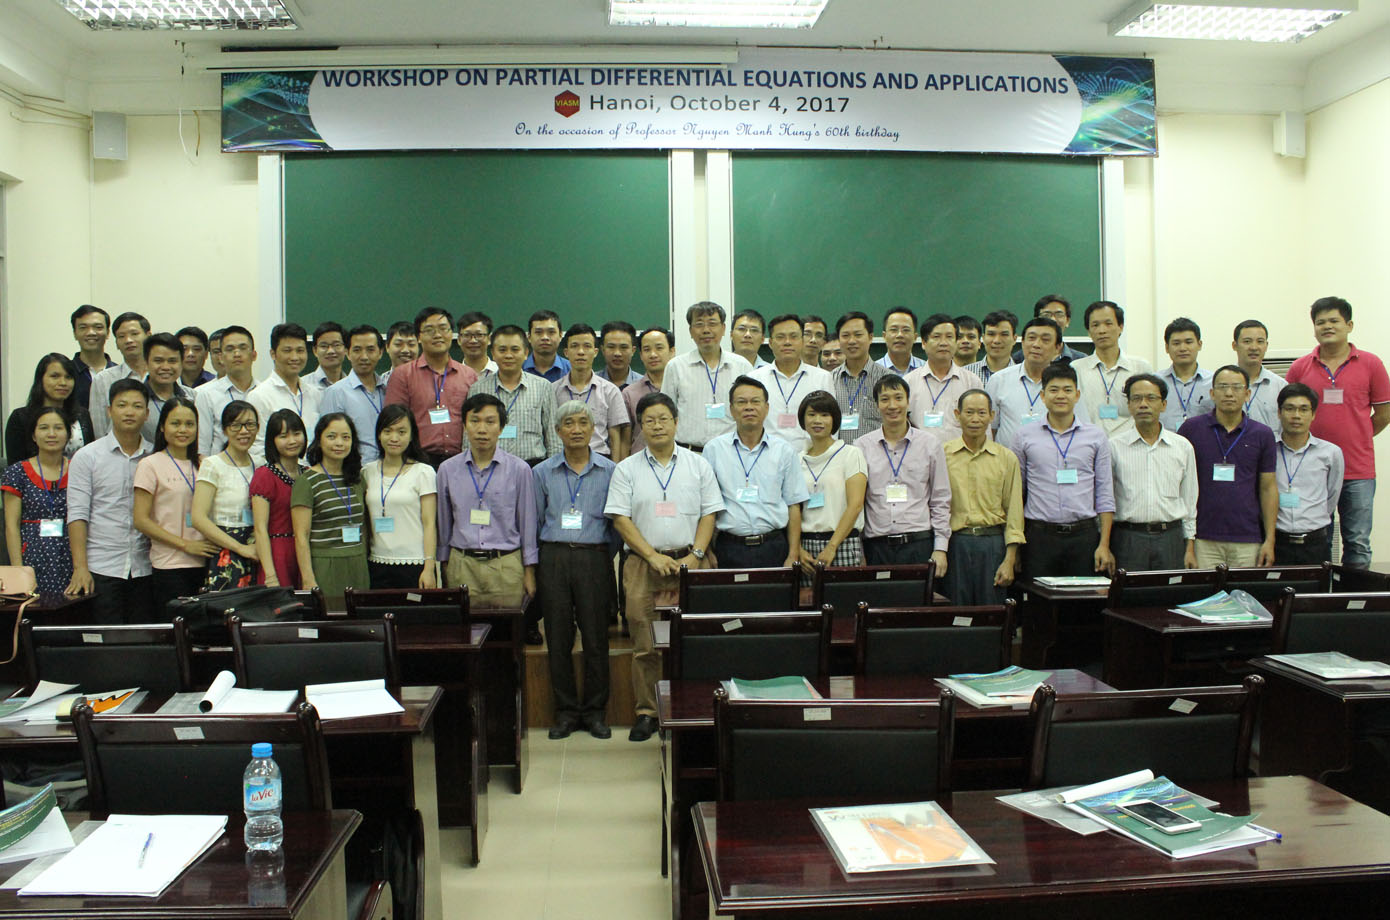 Workshop on Partial Differential Equations and Applications